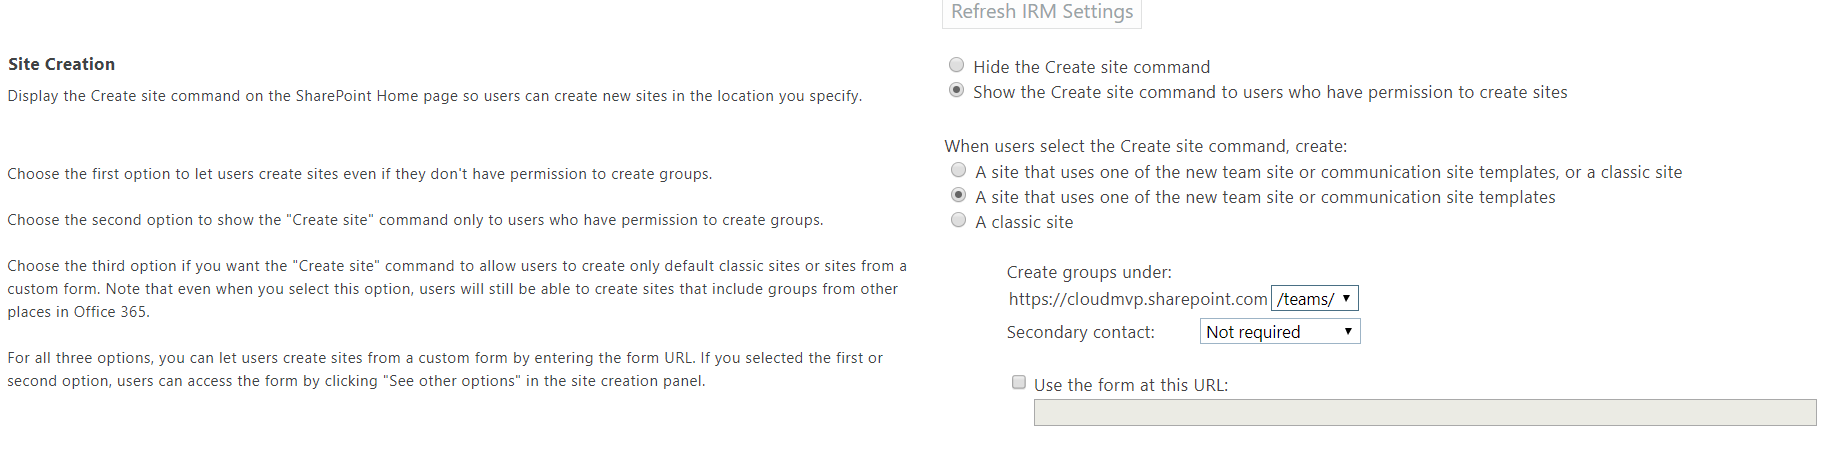 this would only work if you have your self service site creation setting is set to show the create site command to user who have permission